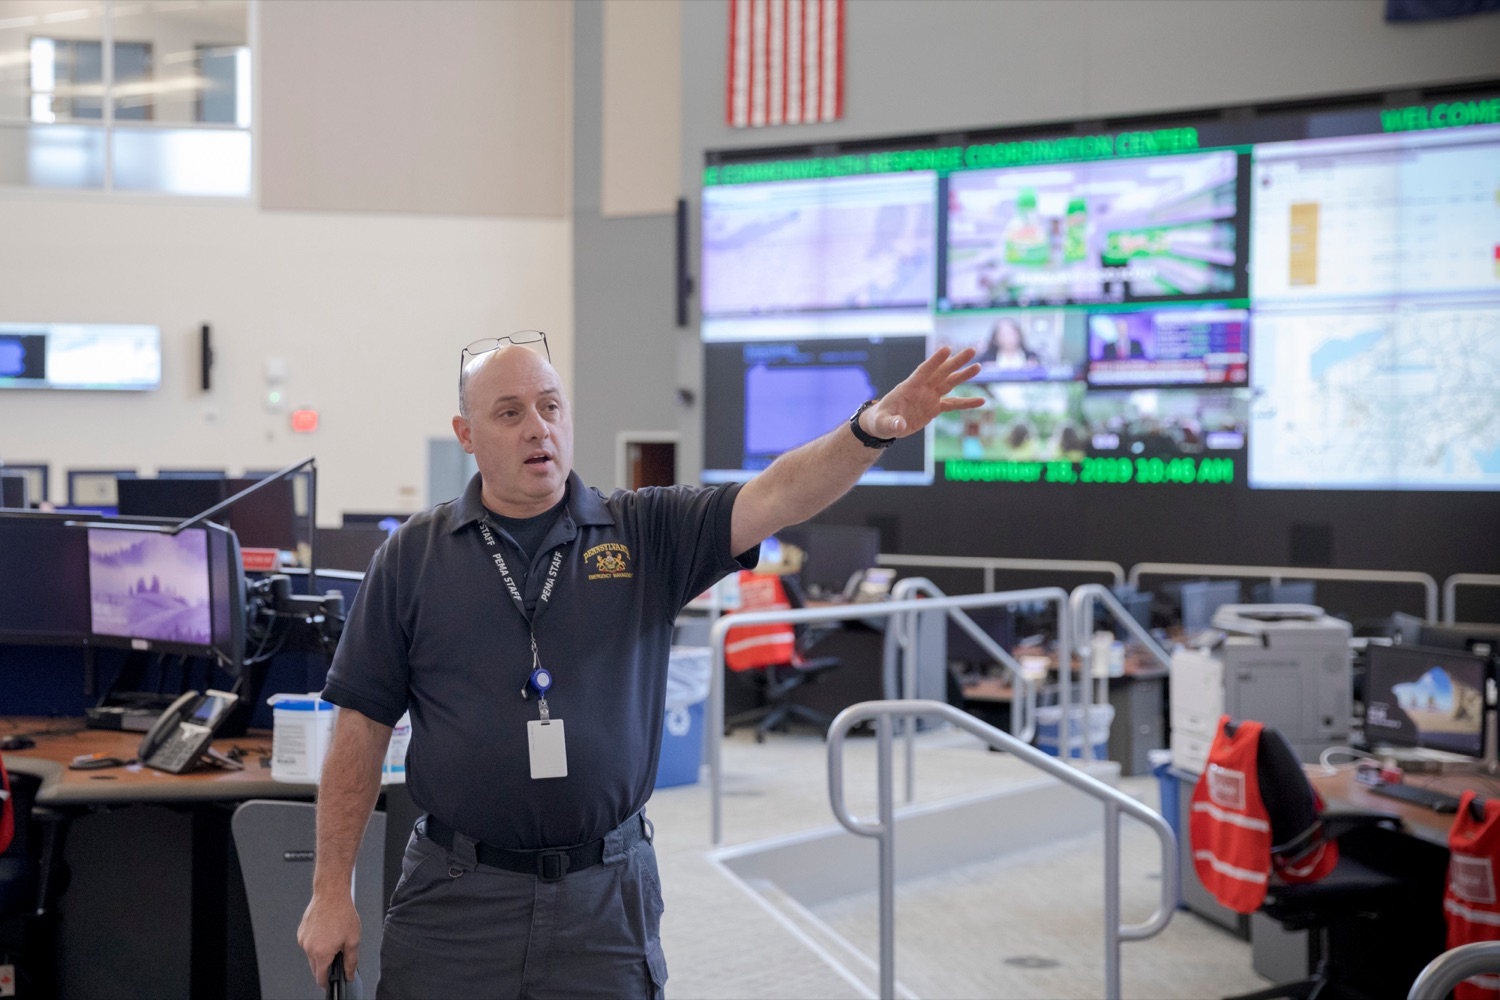 "<a href=""http://filesource.abacast.com/commonwealthofpa/photo/17571_PSP_Thanksgiving_NK_002.JPG"" target=""_blank"">⇣ Download Photo<br></a>Robert Then, commonwealth response coordination center manager for Pennsylvania Emergency Management Agency (PEMA), gives a tour inside the building on Monday, November 18, 2019."